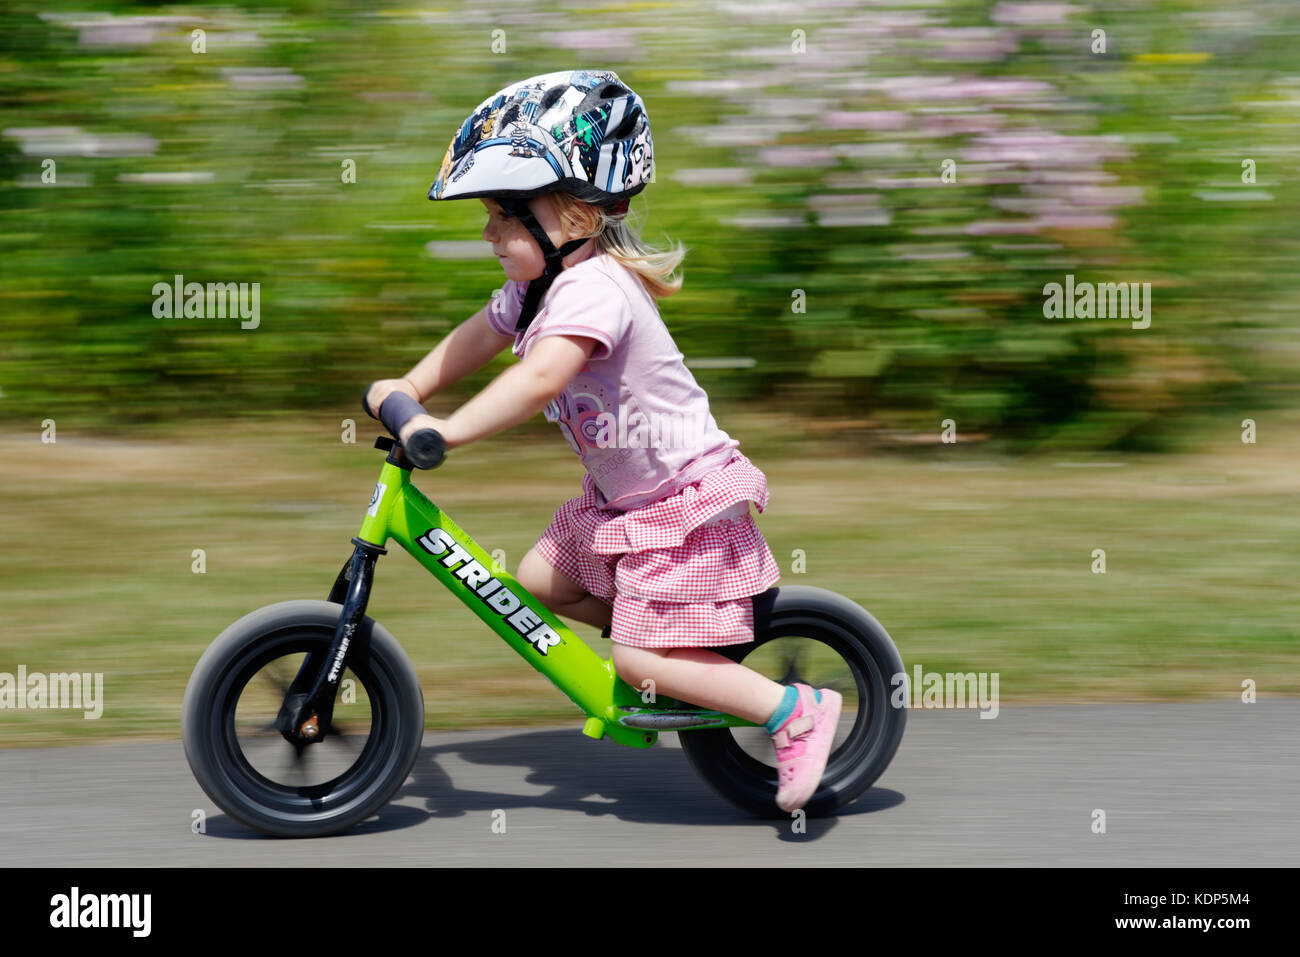 a-three-year-old-girl-riding-a-balance-bike-KDP5M4.jpg